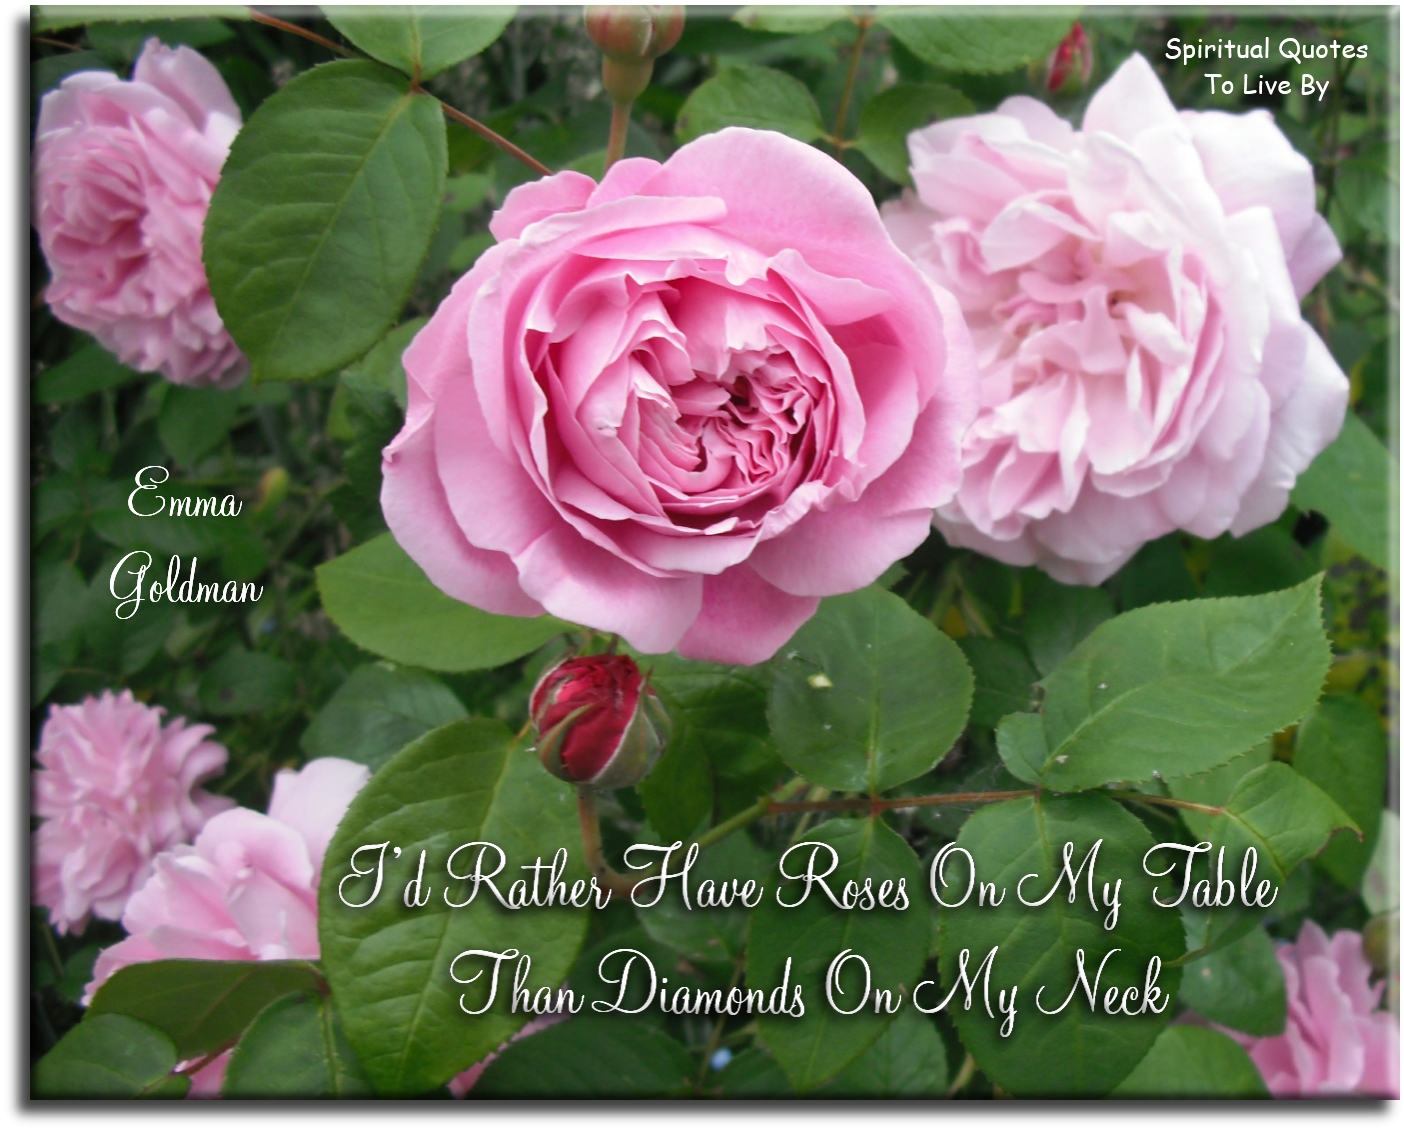 Emma Goldman quote: I'd rather have roses on my table than diamonds on my neck. Spiritual Quotes To Live By